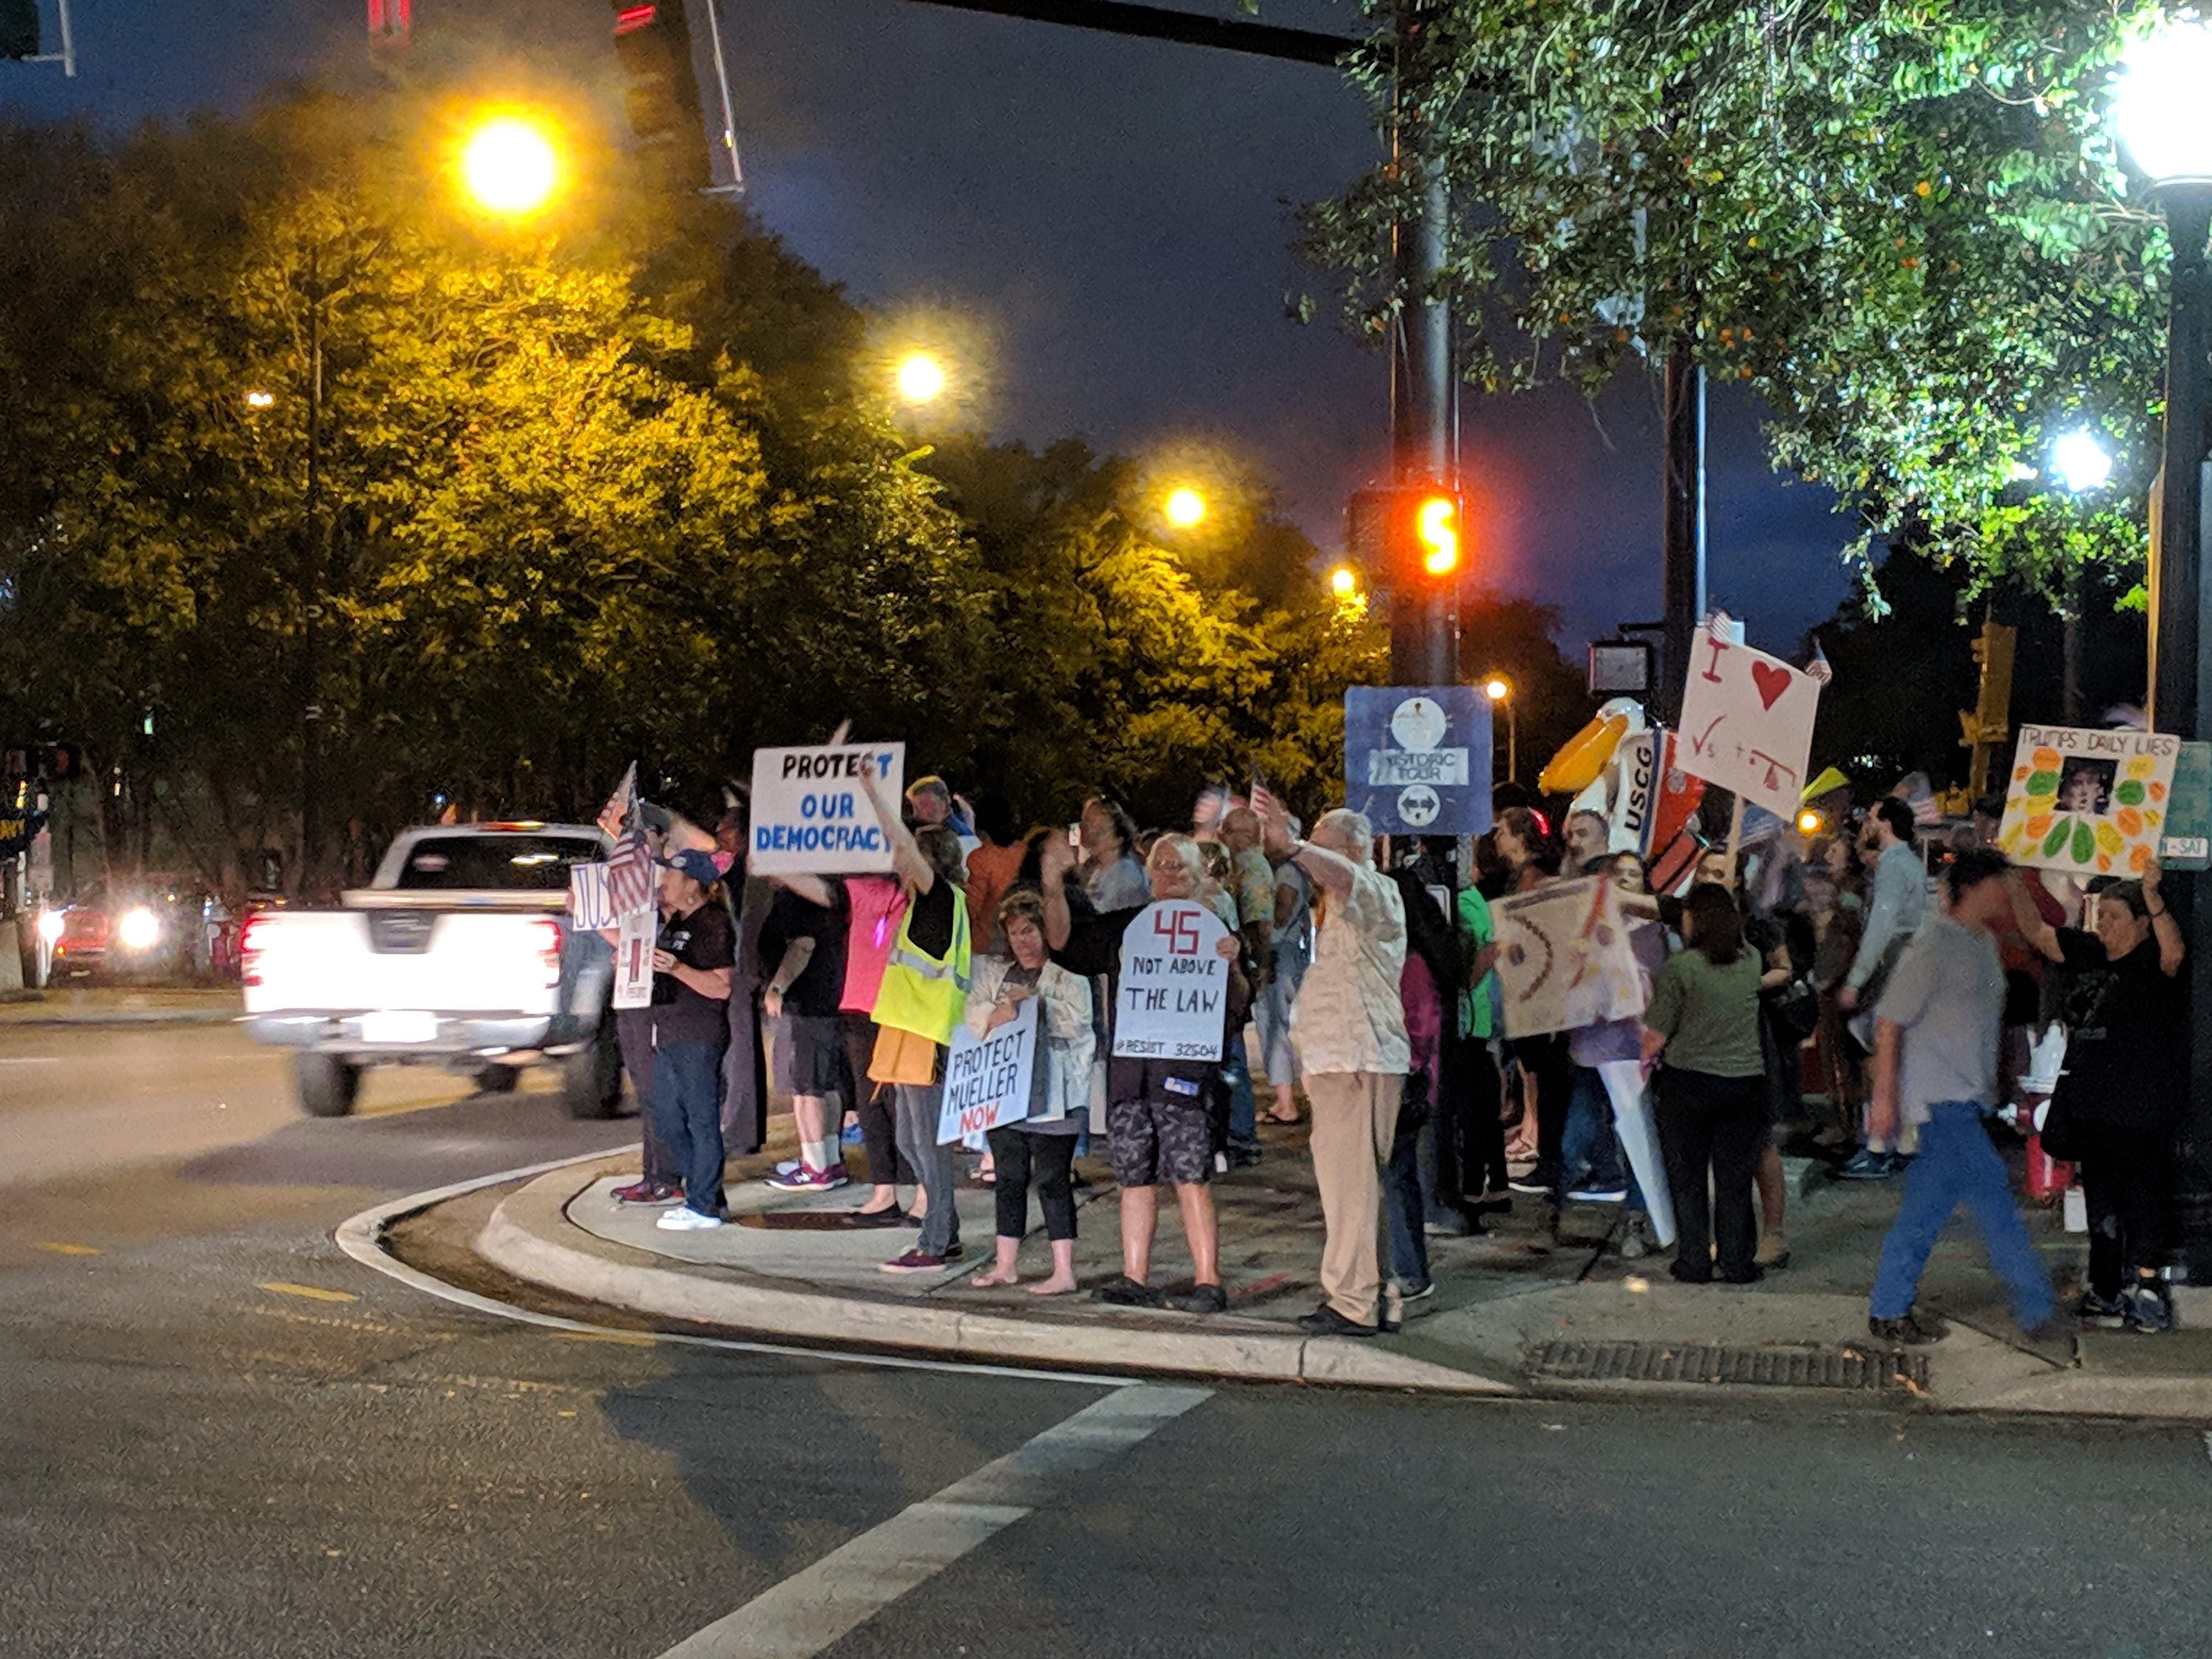 Just over 40 protestors hold a demonstration at the intersection of Garden and Palafox Street in support of the investigation into Russian interference in the 2016 presidential election.